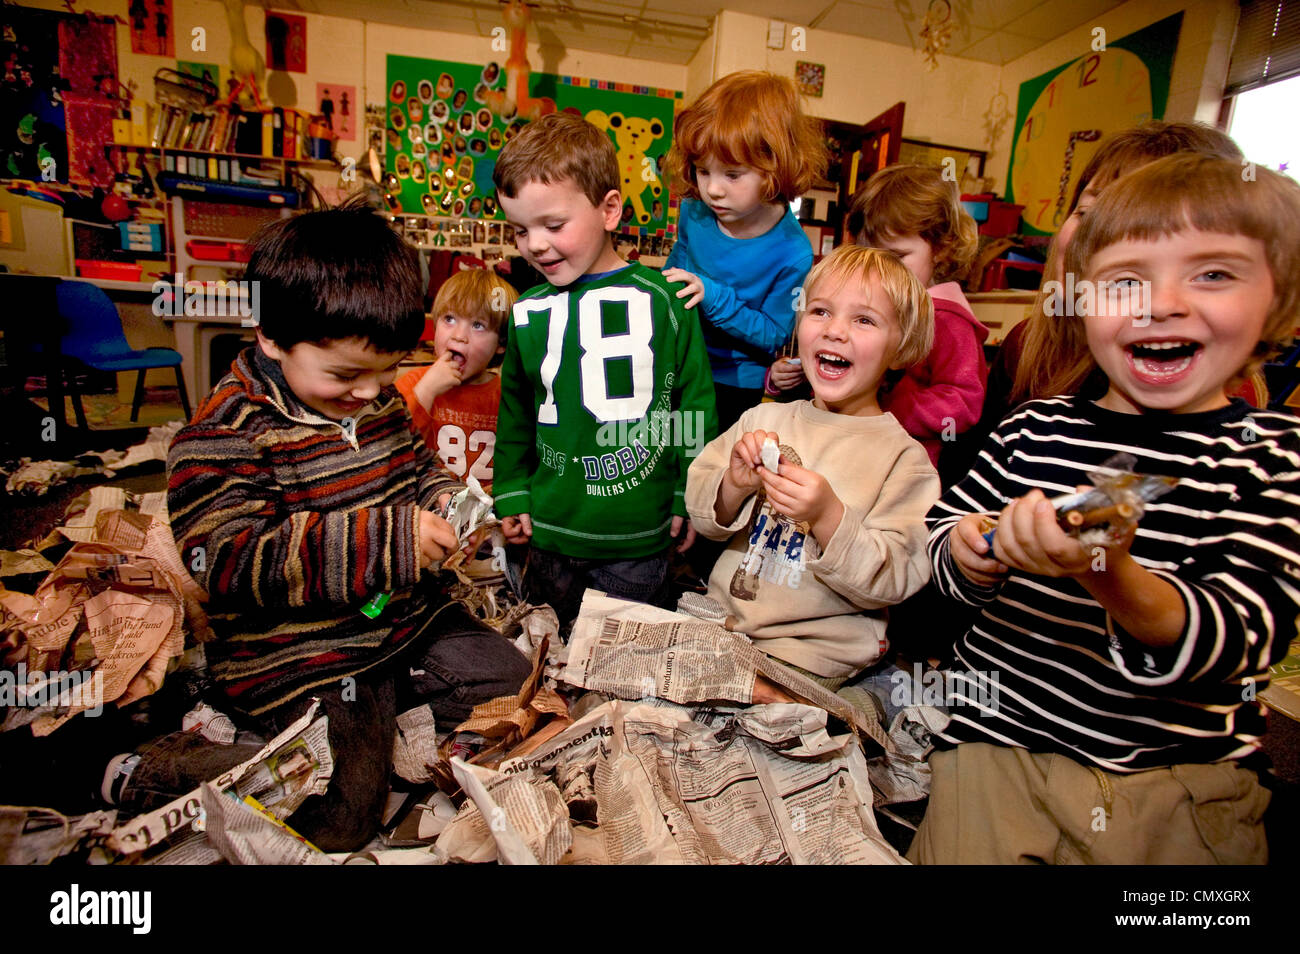 Children in playgroup playing pass the parcel - Stock Image